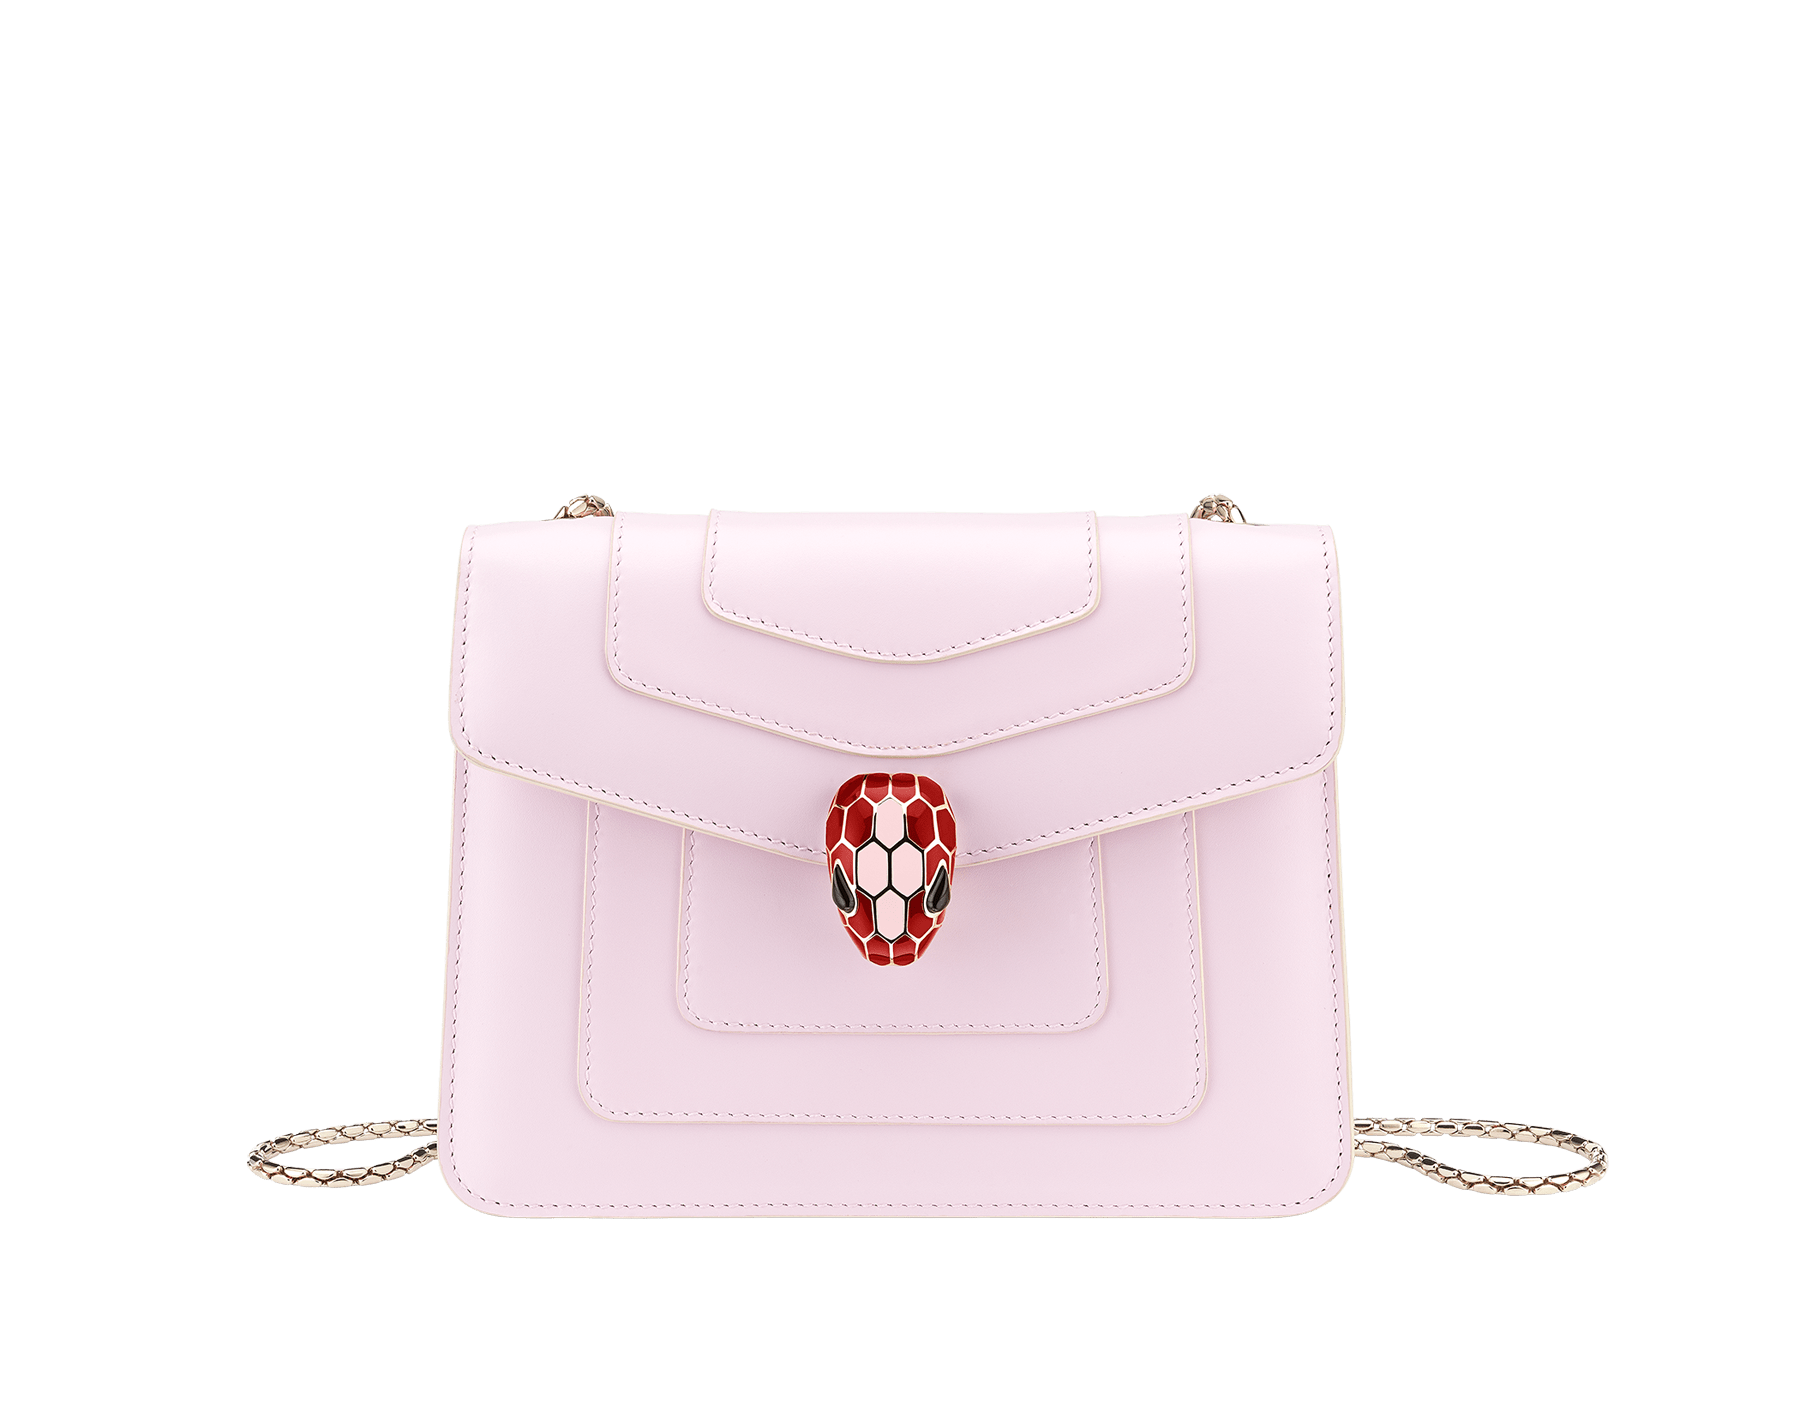 Serpenti Forever crossbody bag in sea star coral smooth calf leather body and milky opal calf leather sides. Snakehead closure in light gold plated brass decorated with milky opal and black enamel, and black onyx eyes. 422-BCLa image 1